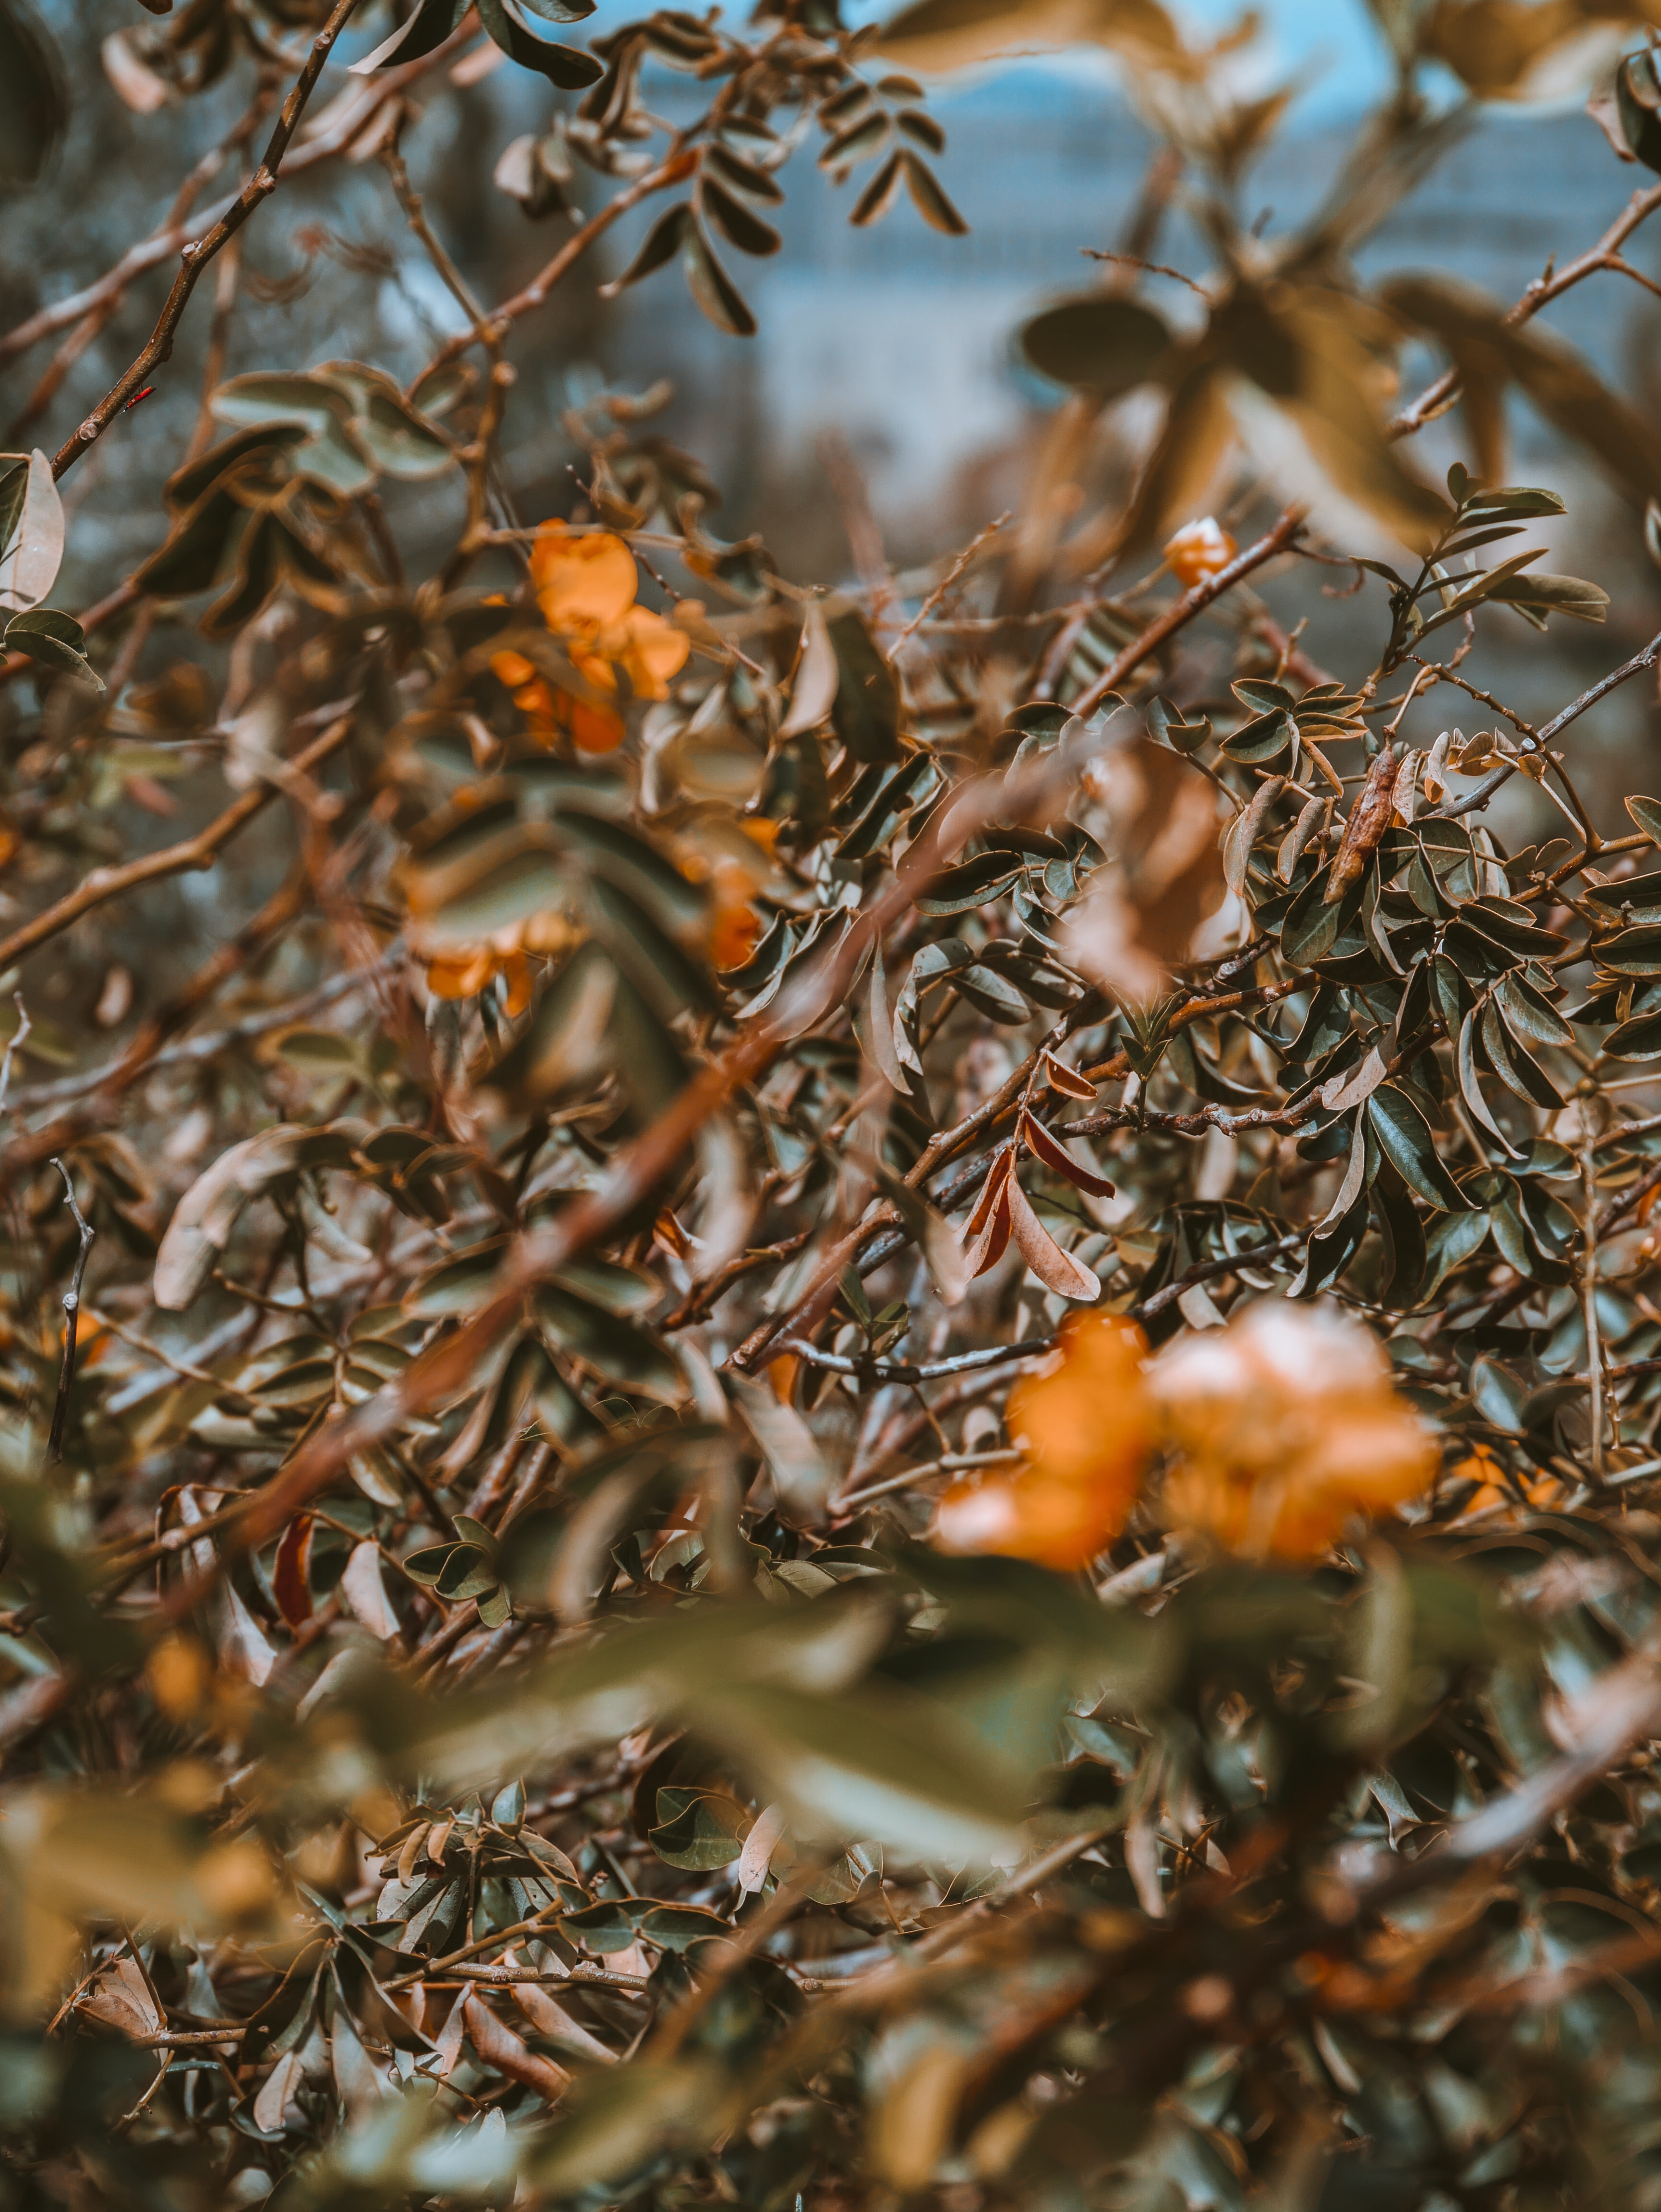 macro photography of brown leafed plant